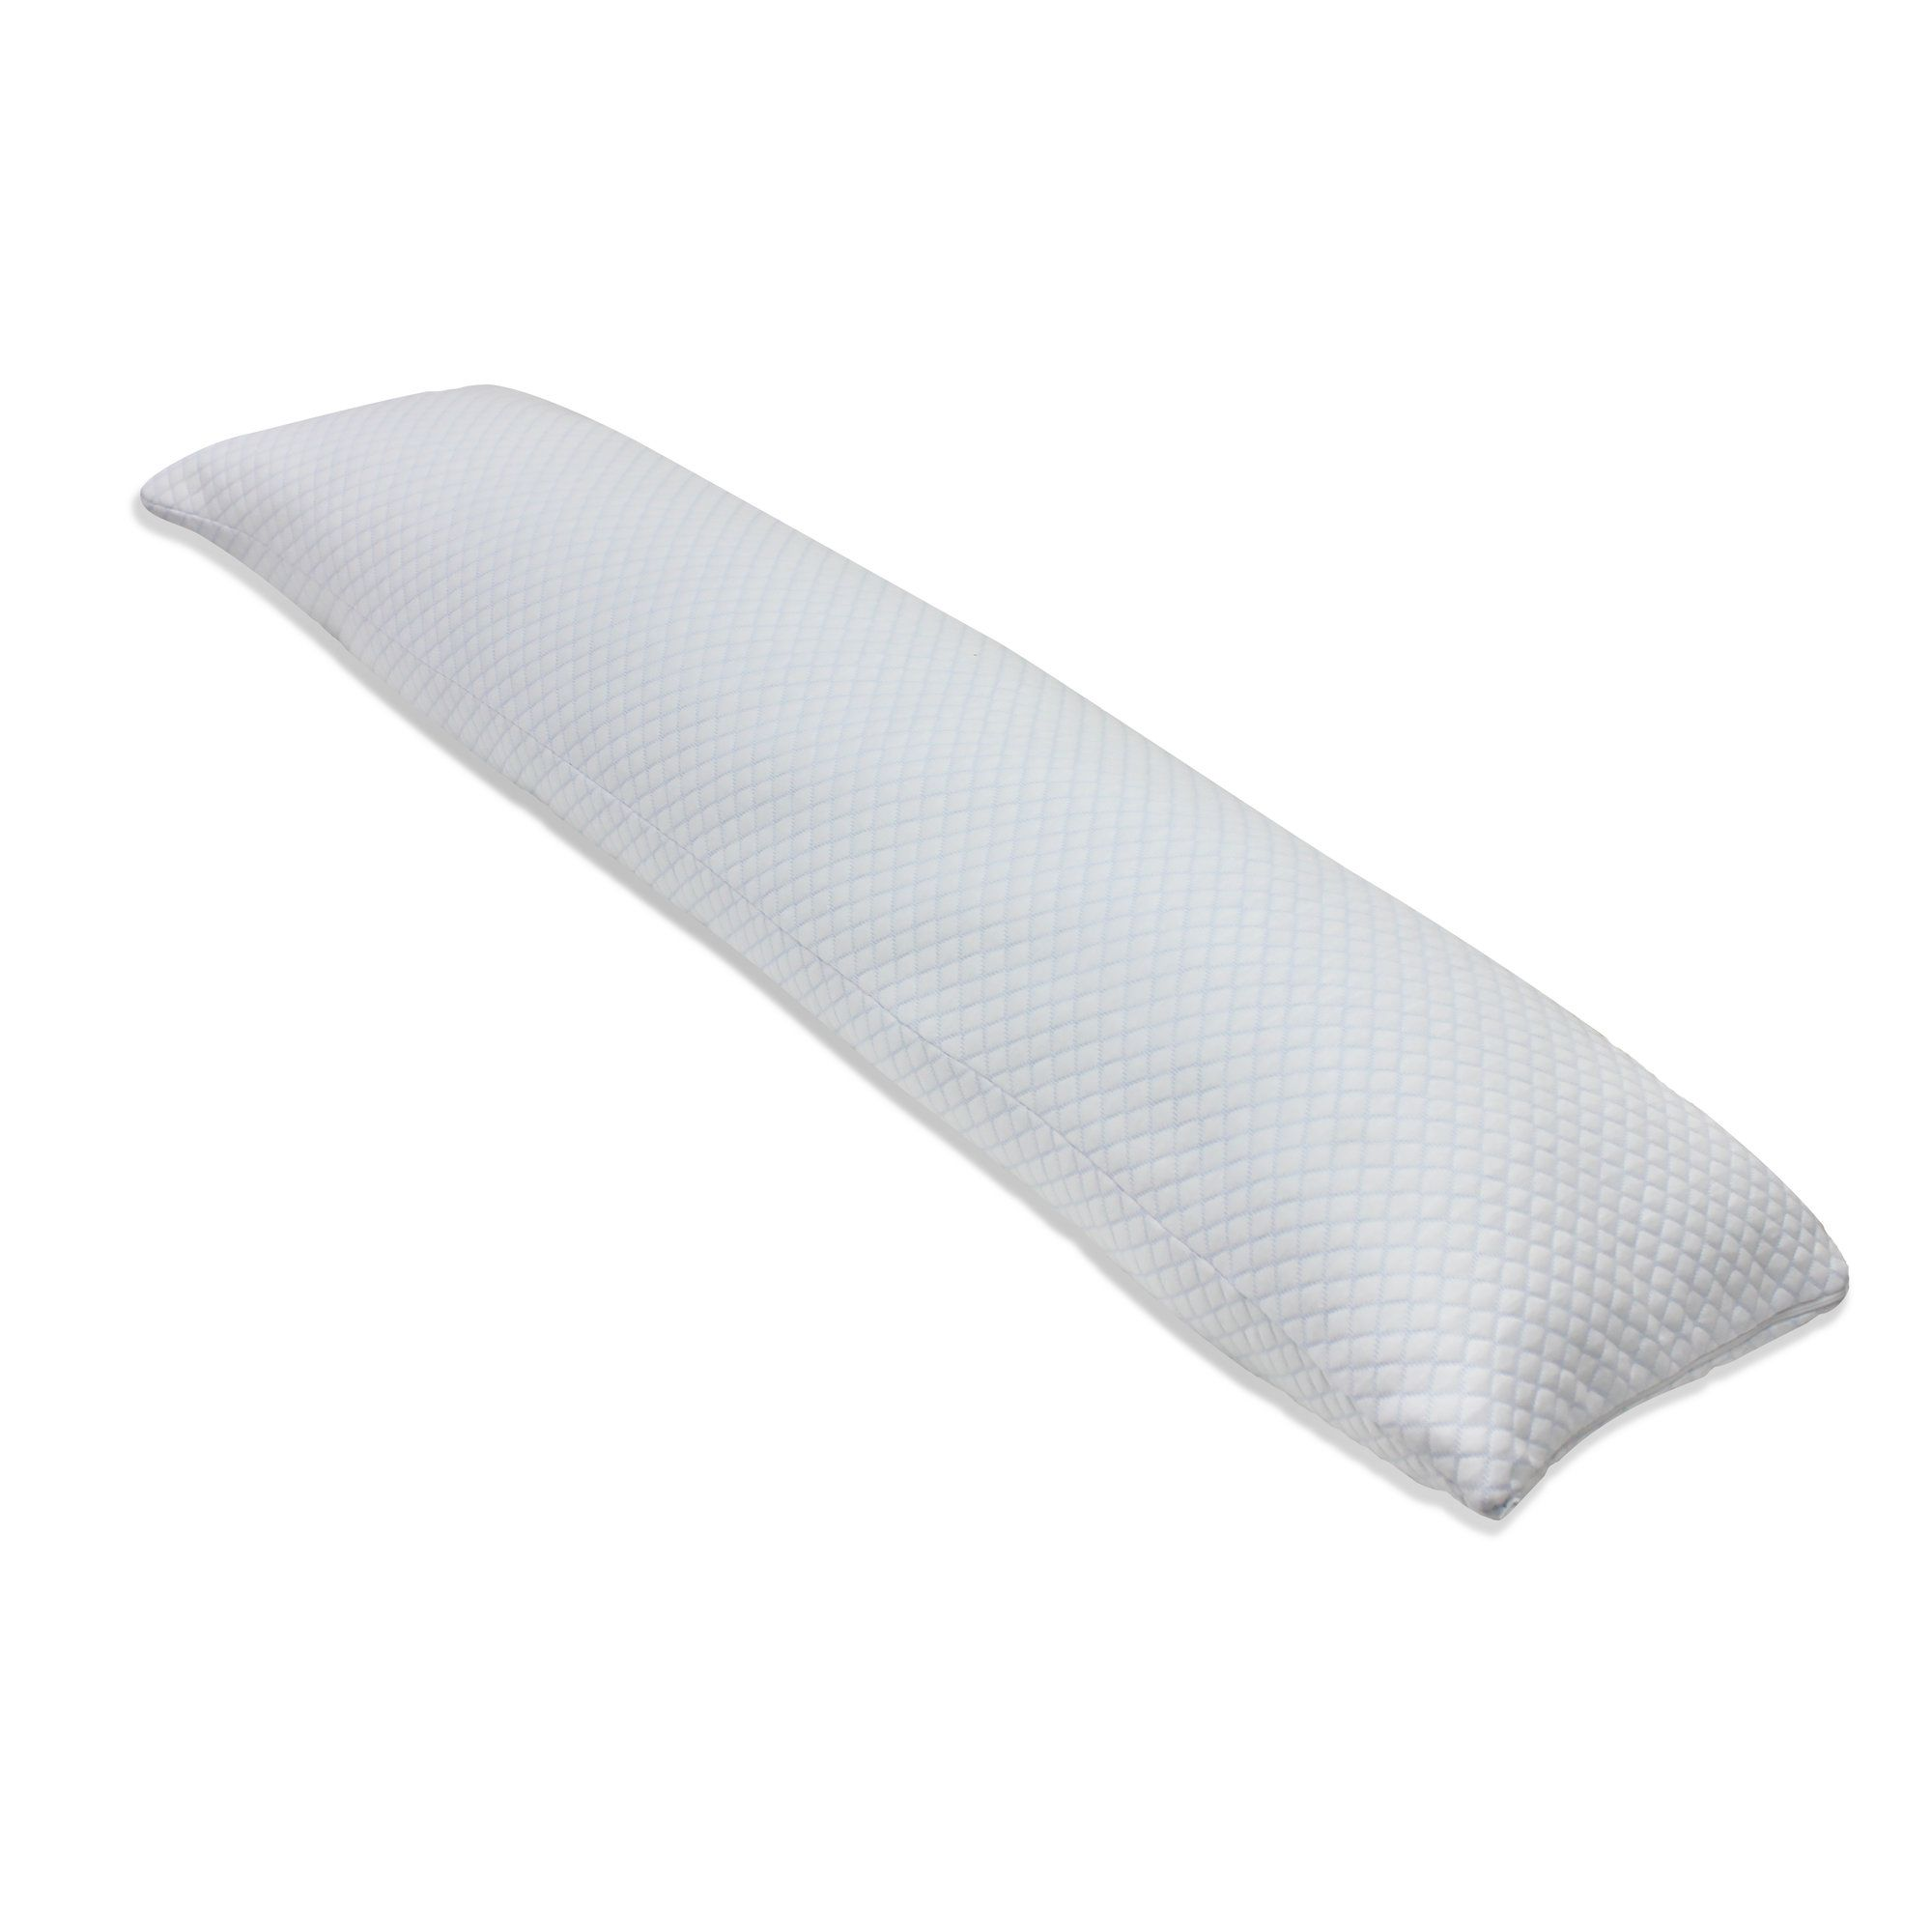 deals of body memory pillow firm cheap luxury serta foam find